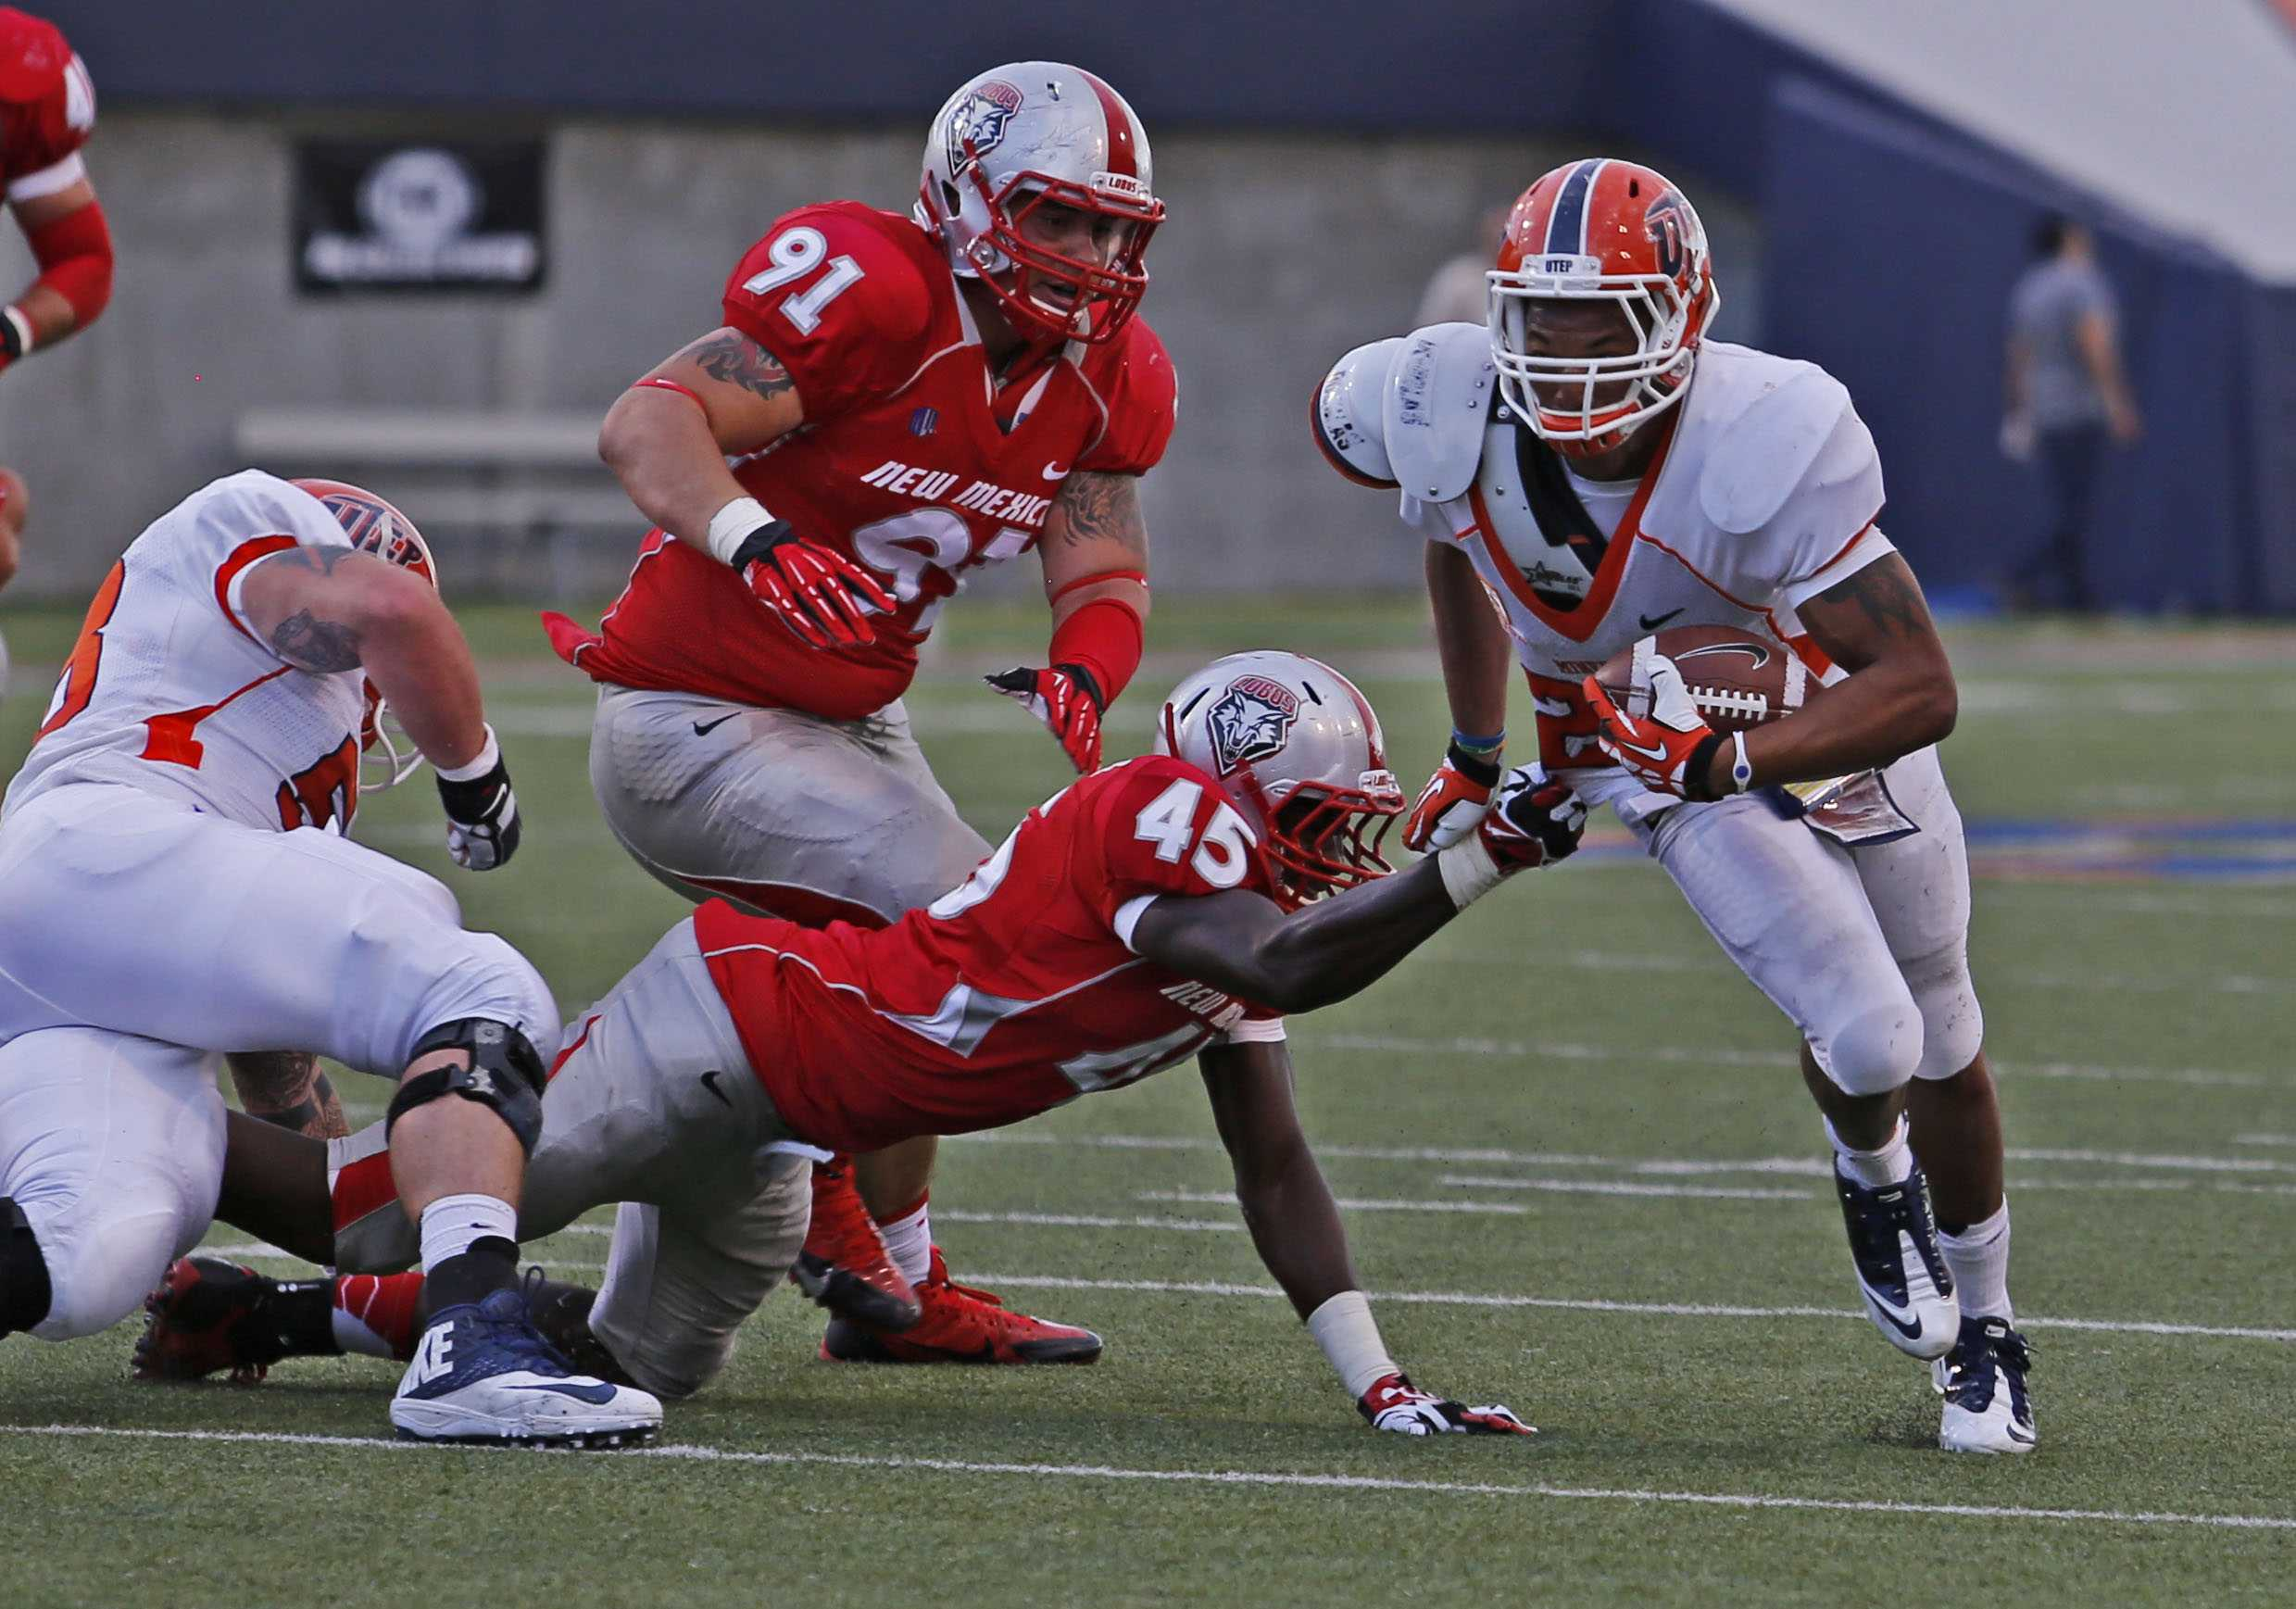 Junior running back Nathan Jeffery escapes two Lobos defenders during the first quarter.